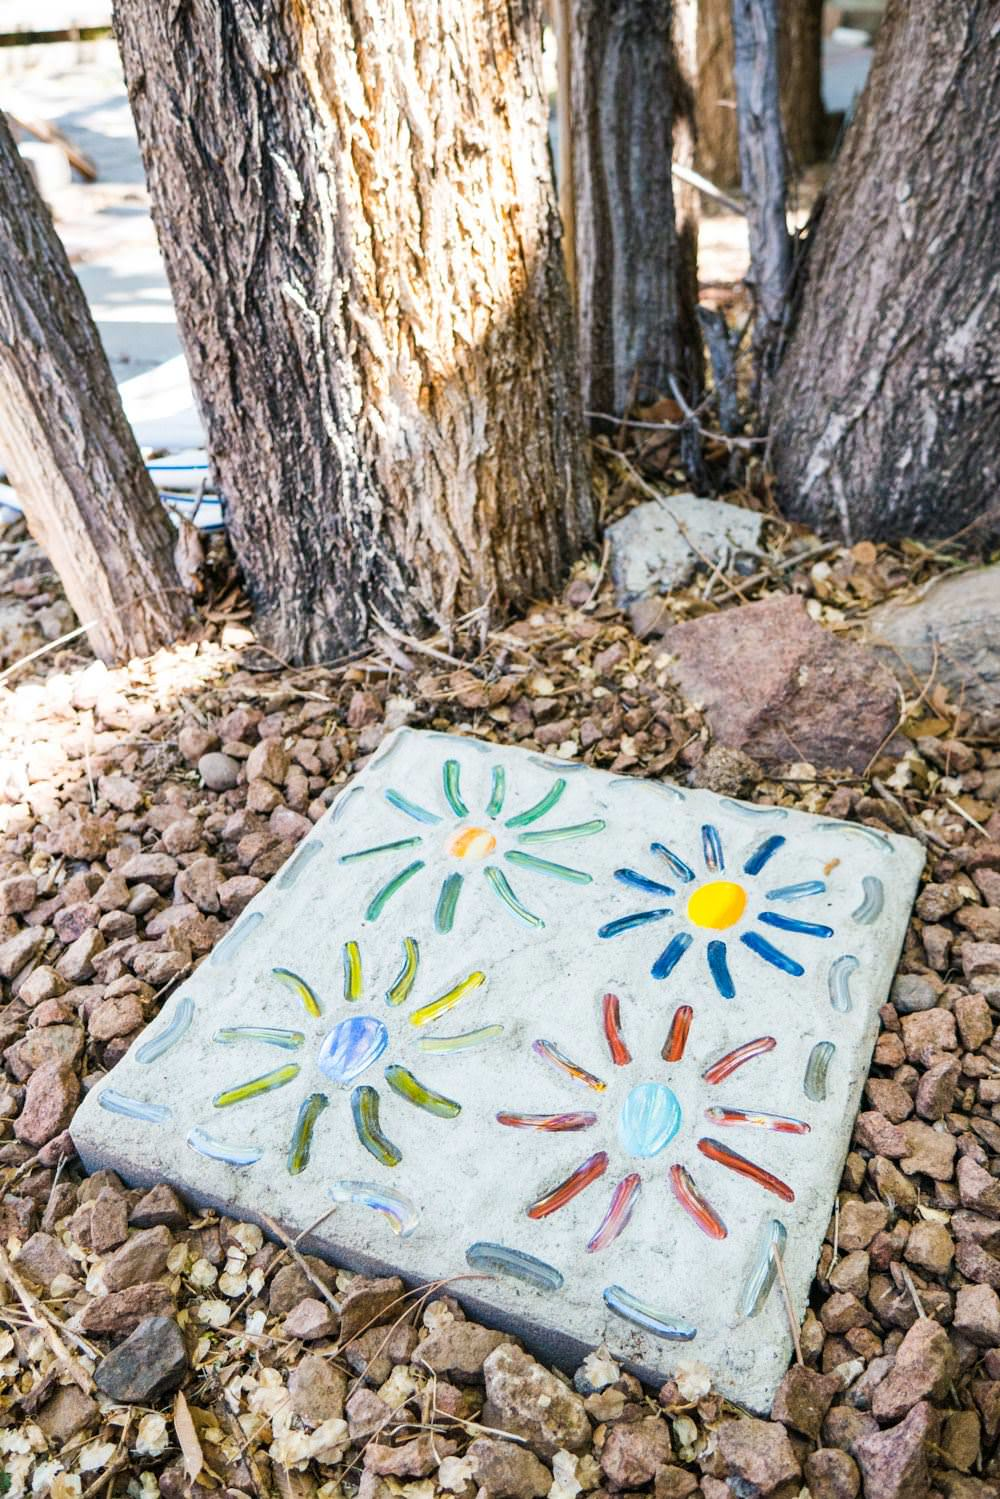 Creative diy mosaic garden projects the garden glove you can make these funky mosaic stepping stones with this step by step from the mosaic store this diy mosaic project is fast and fun and has a full solutioingenieria Gallery